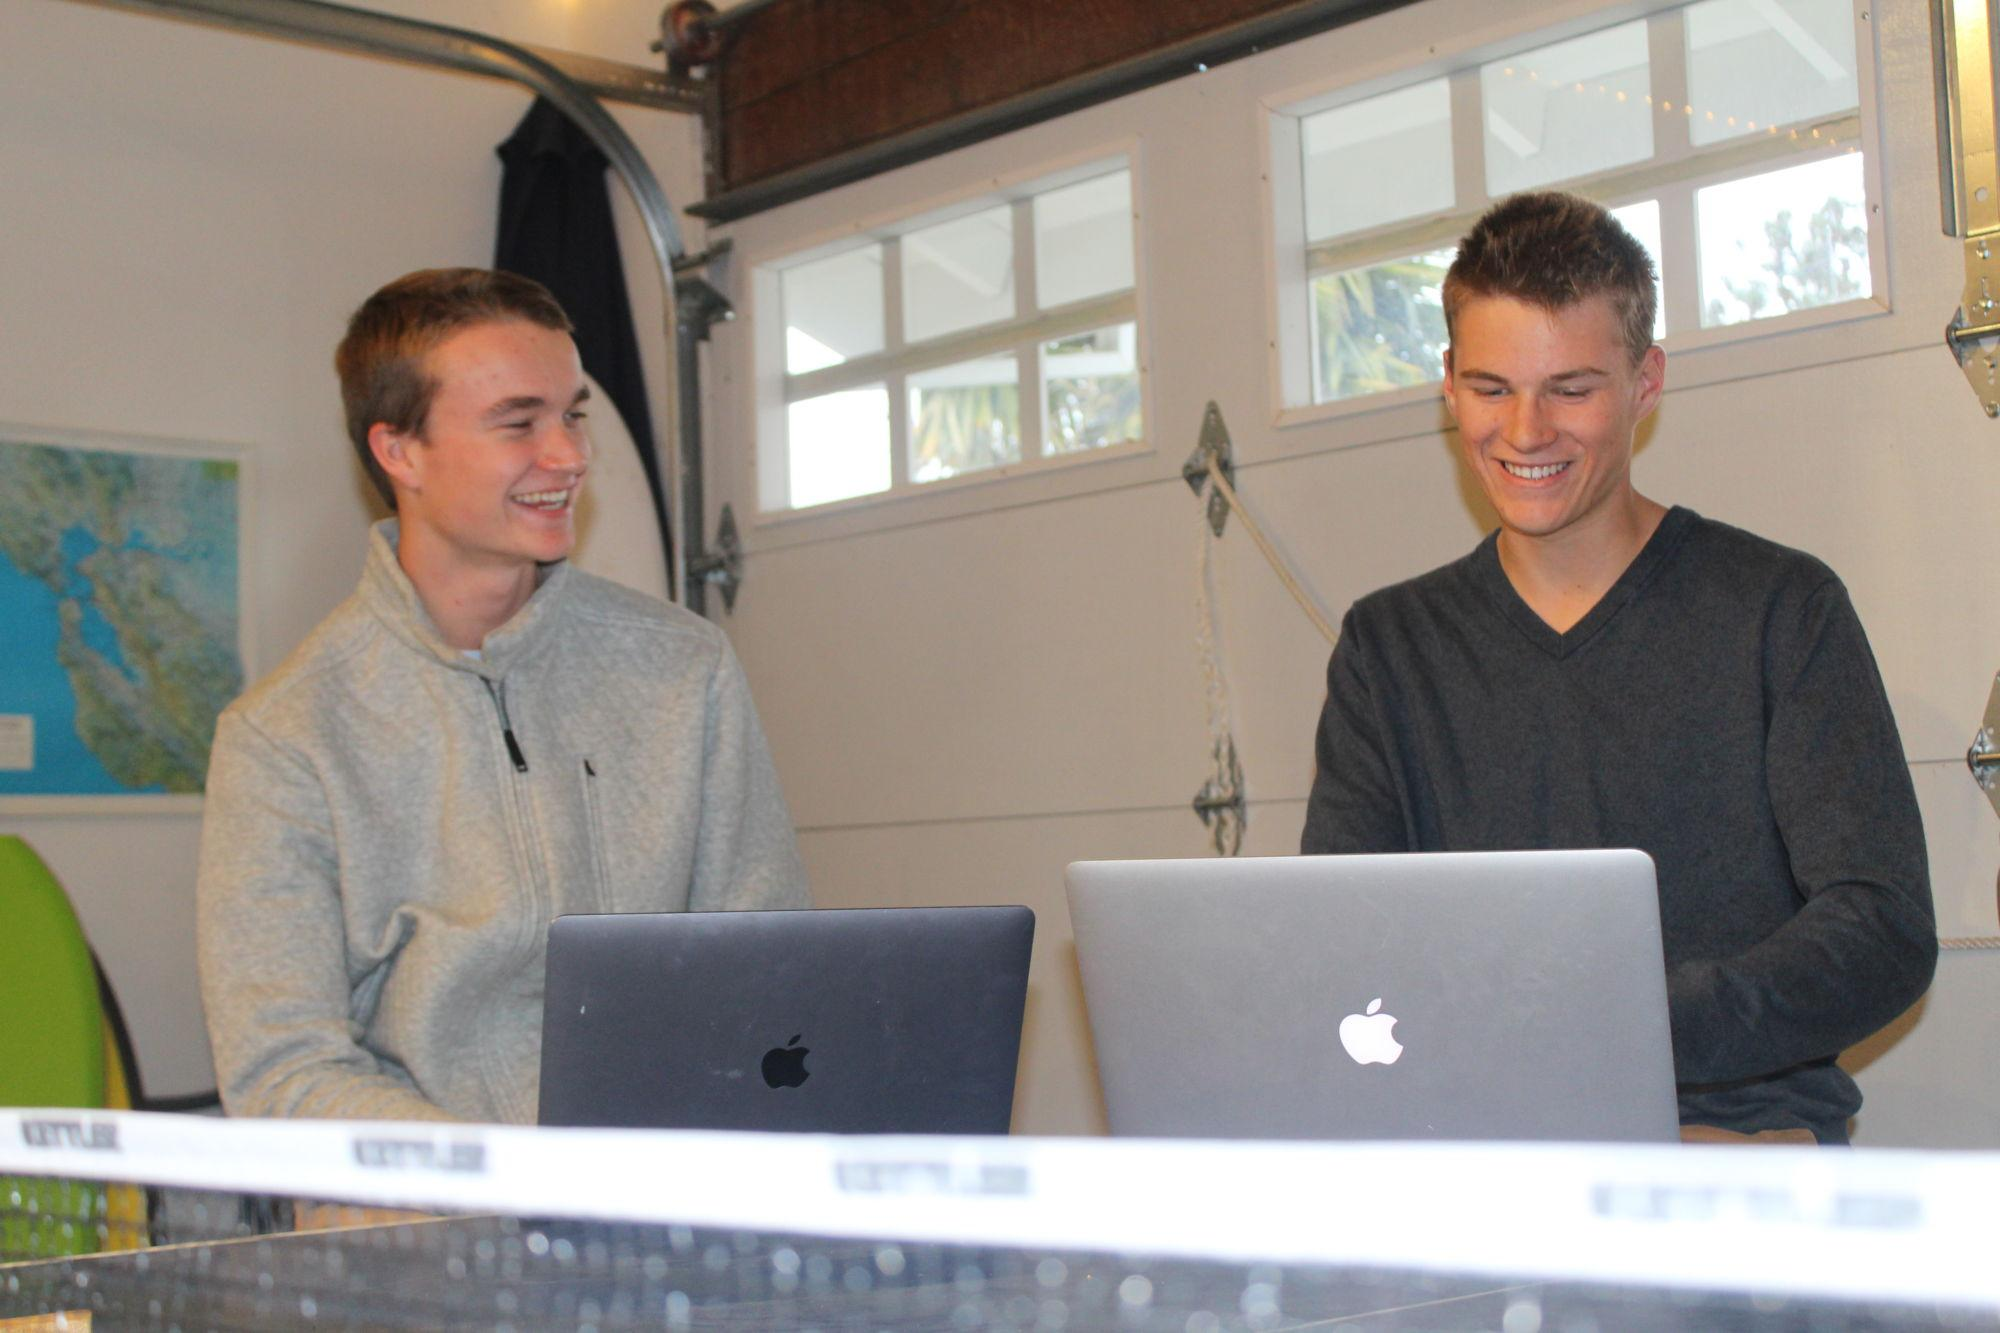 By students, for students tutoring business gains ground